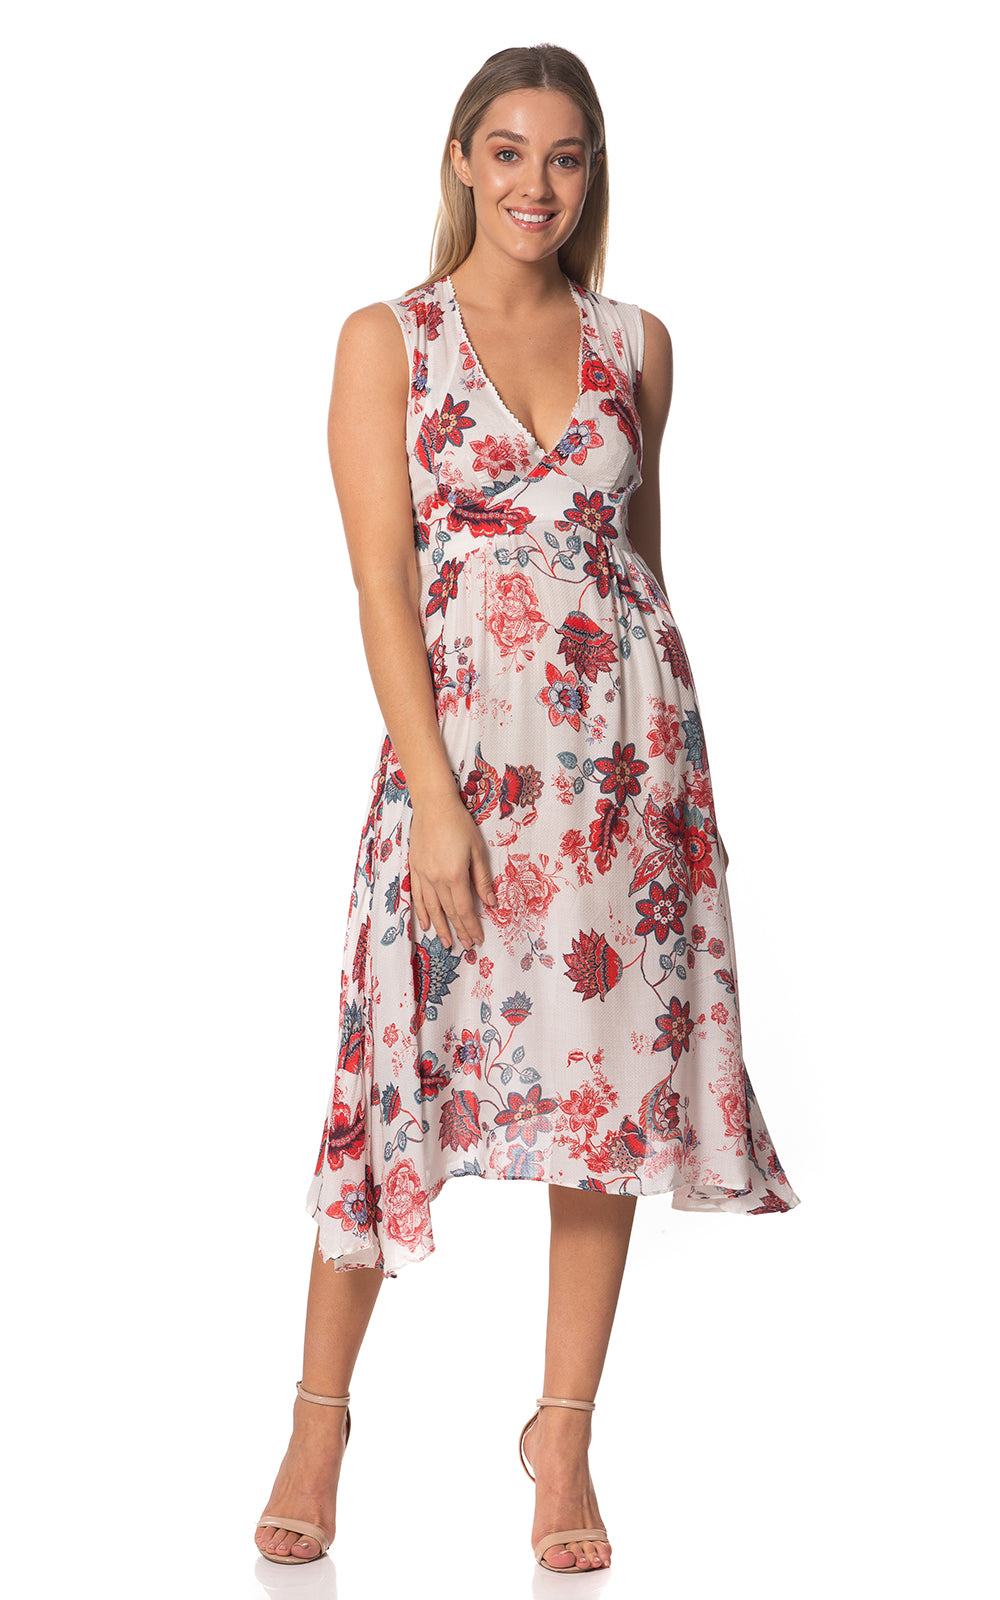 Sheryl V-neck Printed Dress